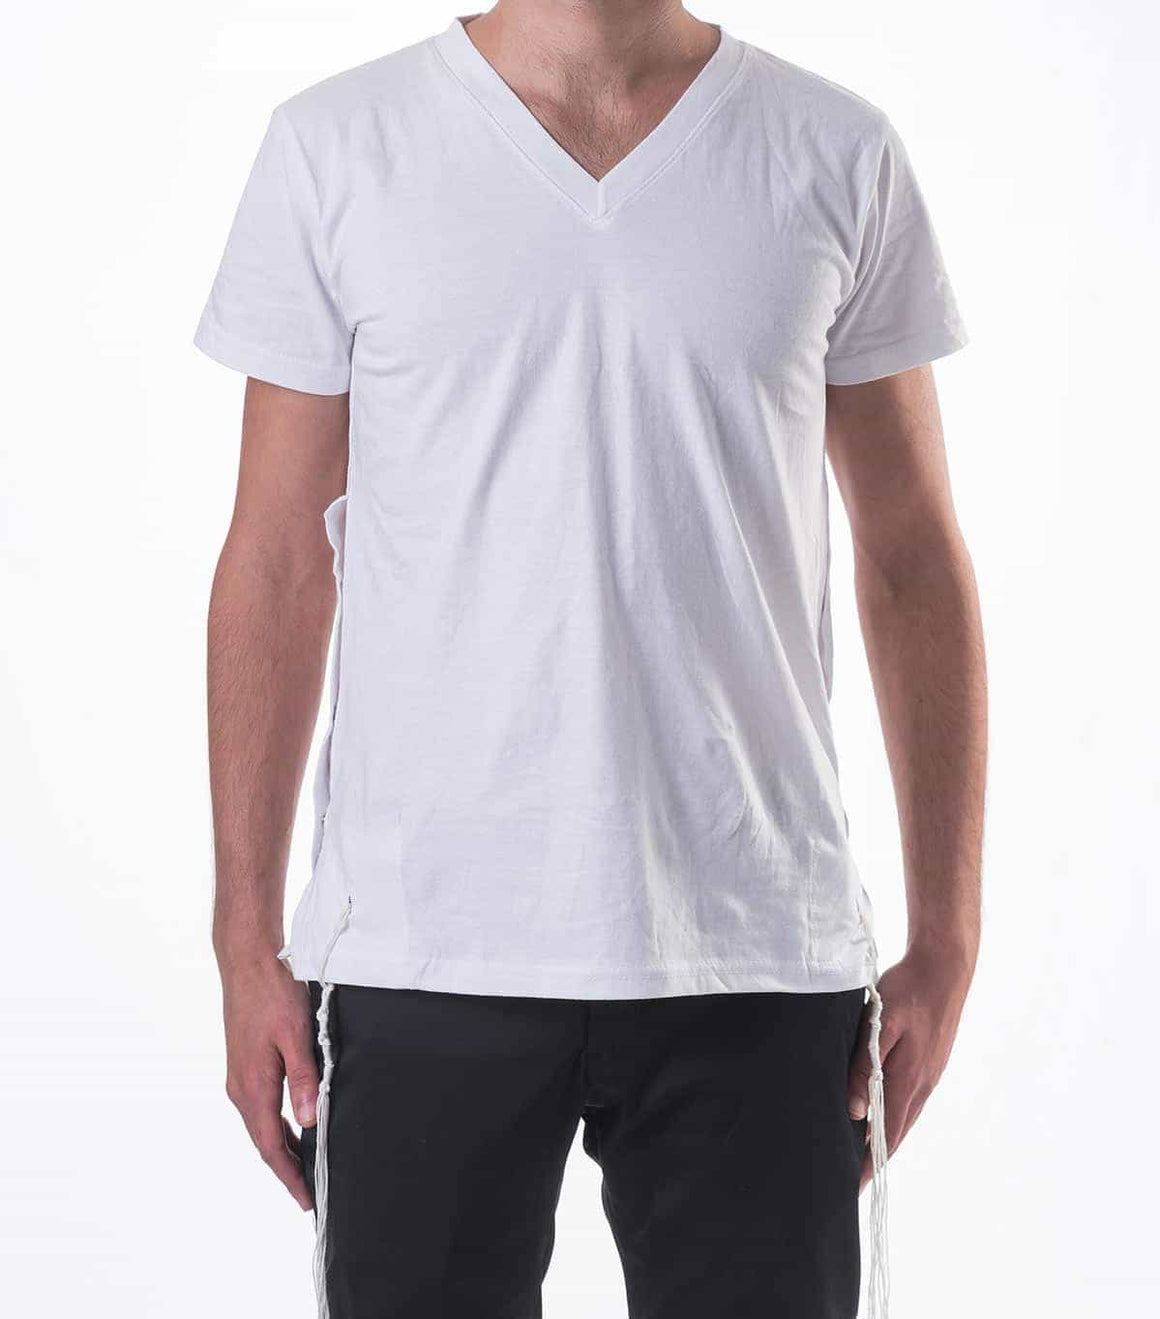 Cotton T-Shirt Tzizit Undershirt